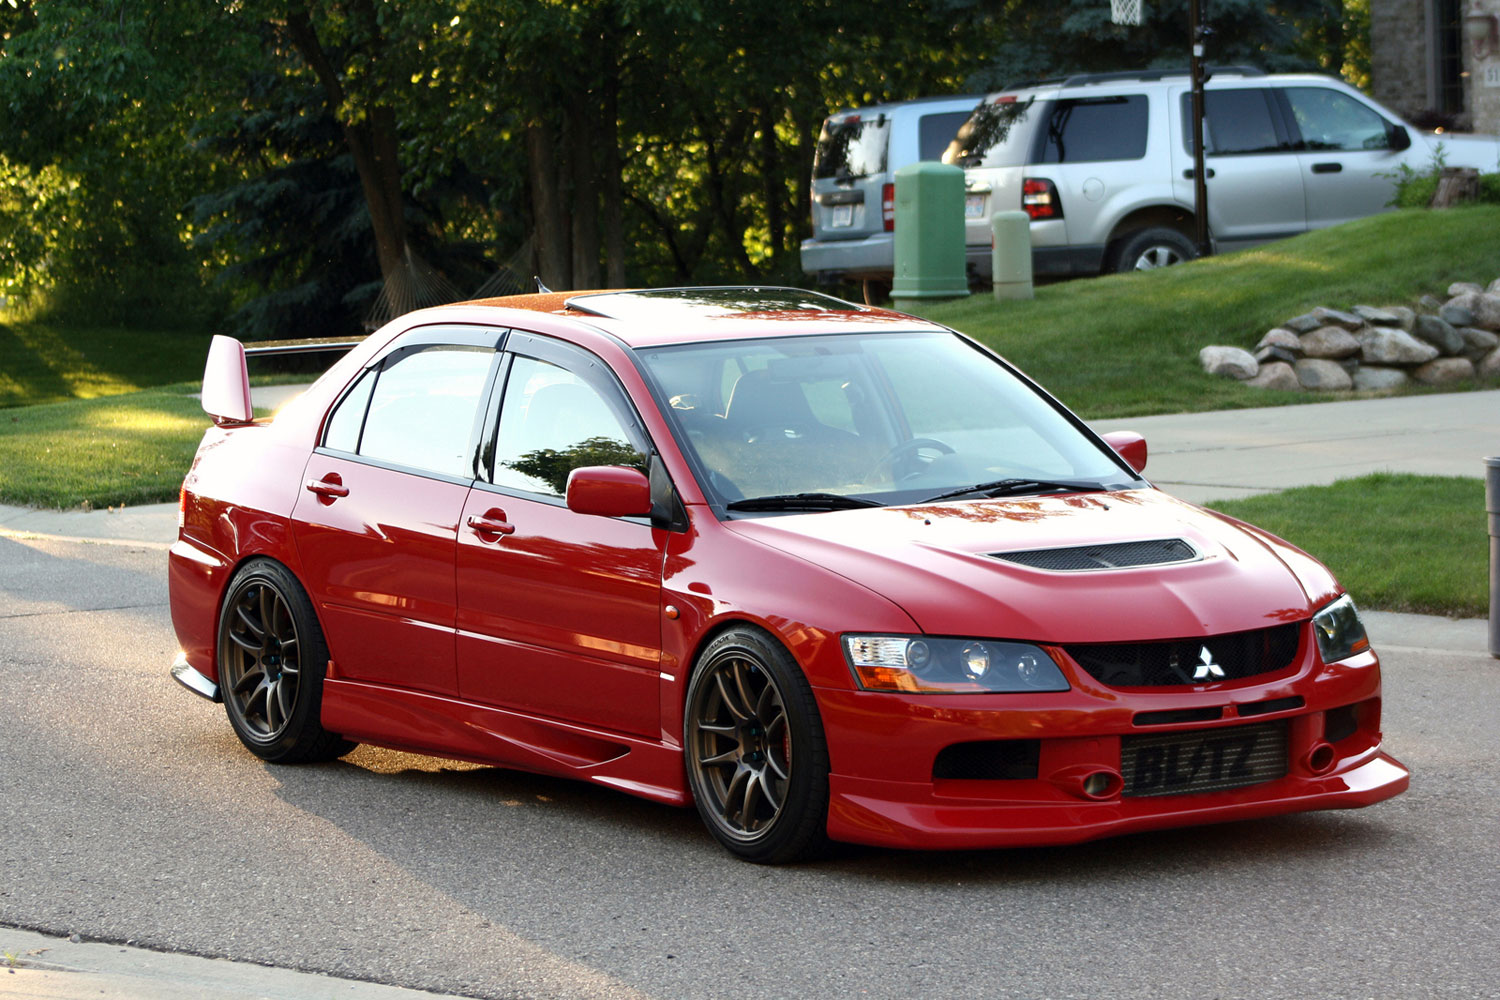 Superior 2003 MITSUBISHI LANCER EVOLUTION   Image #1